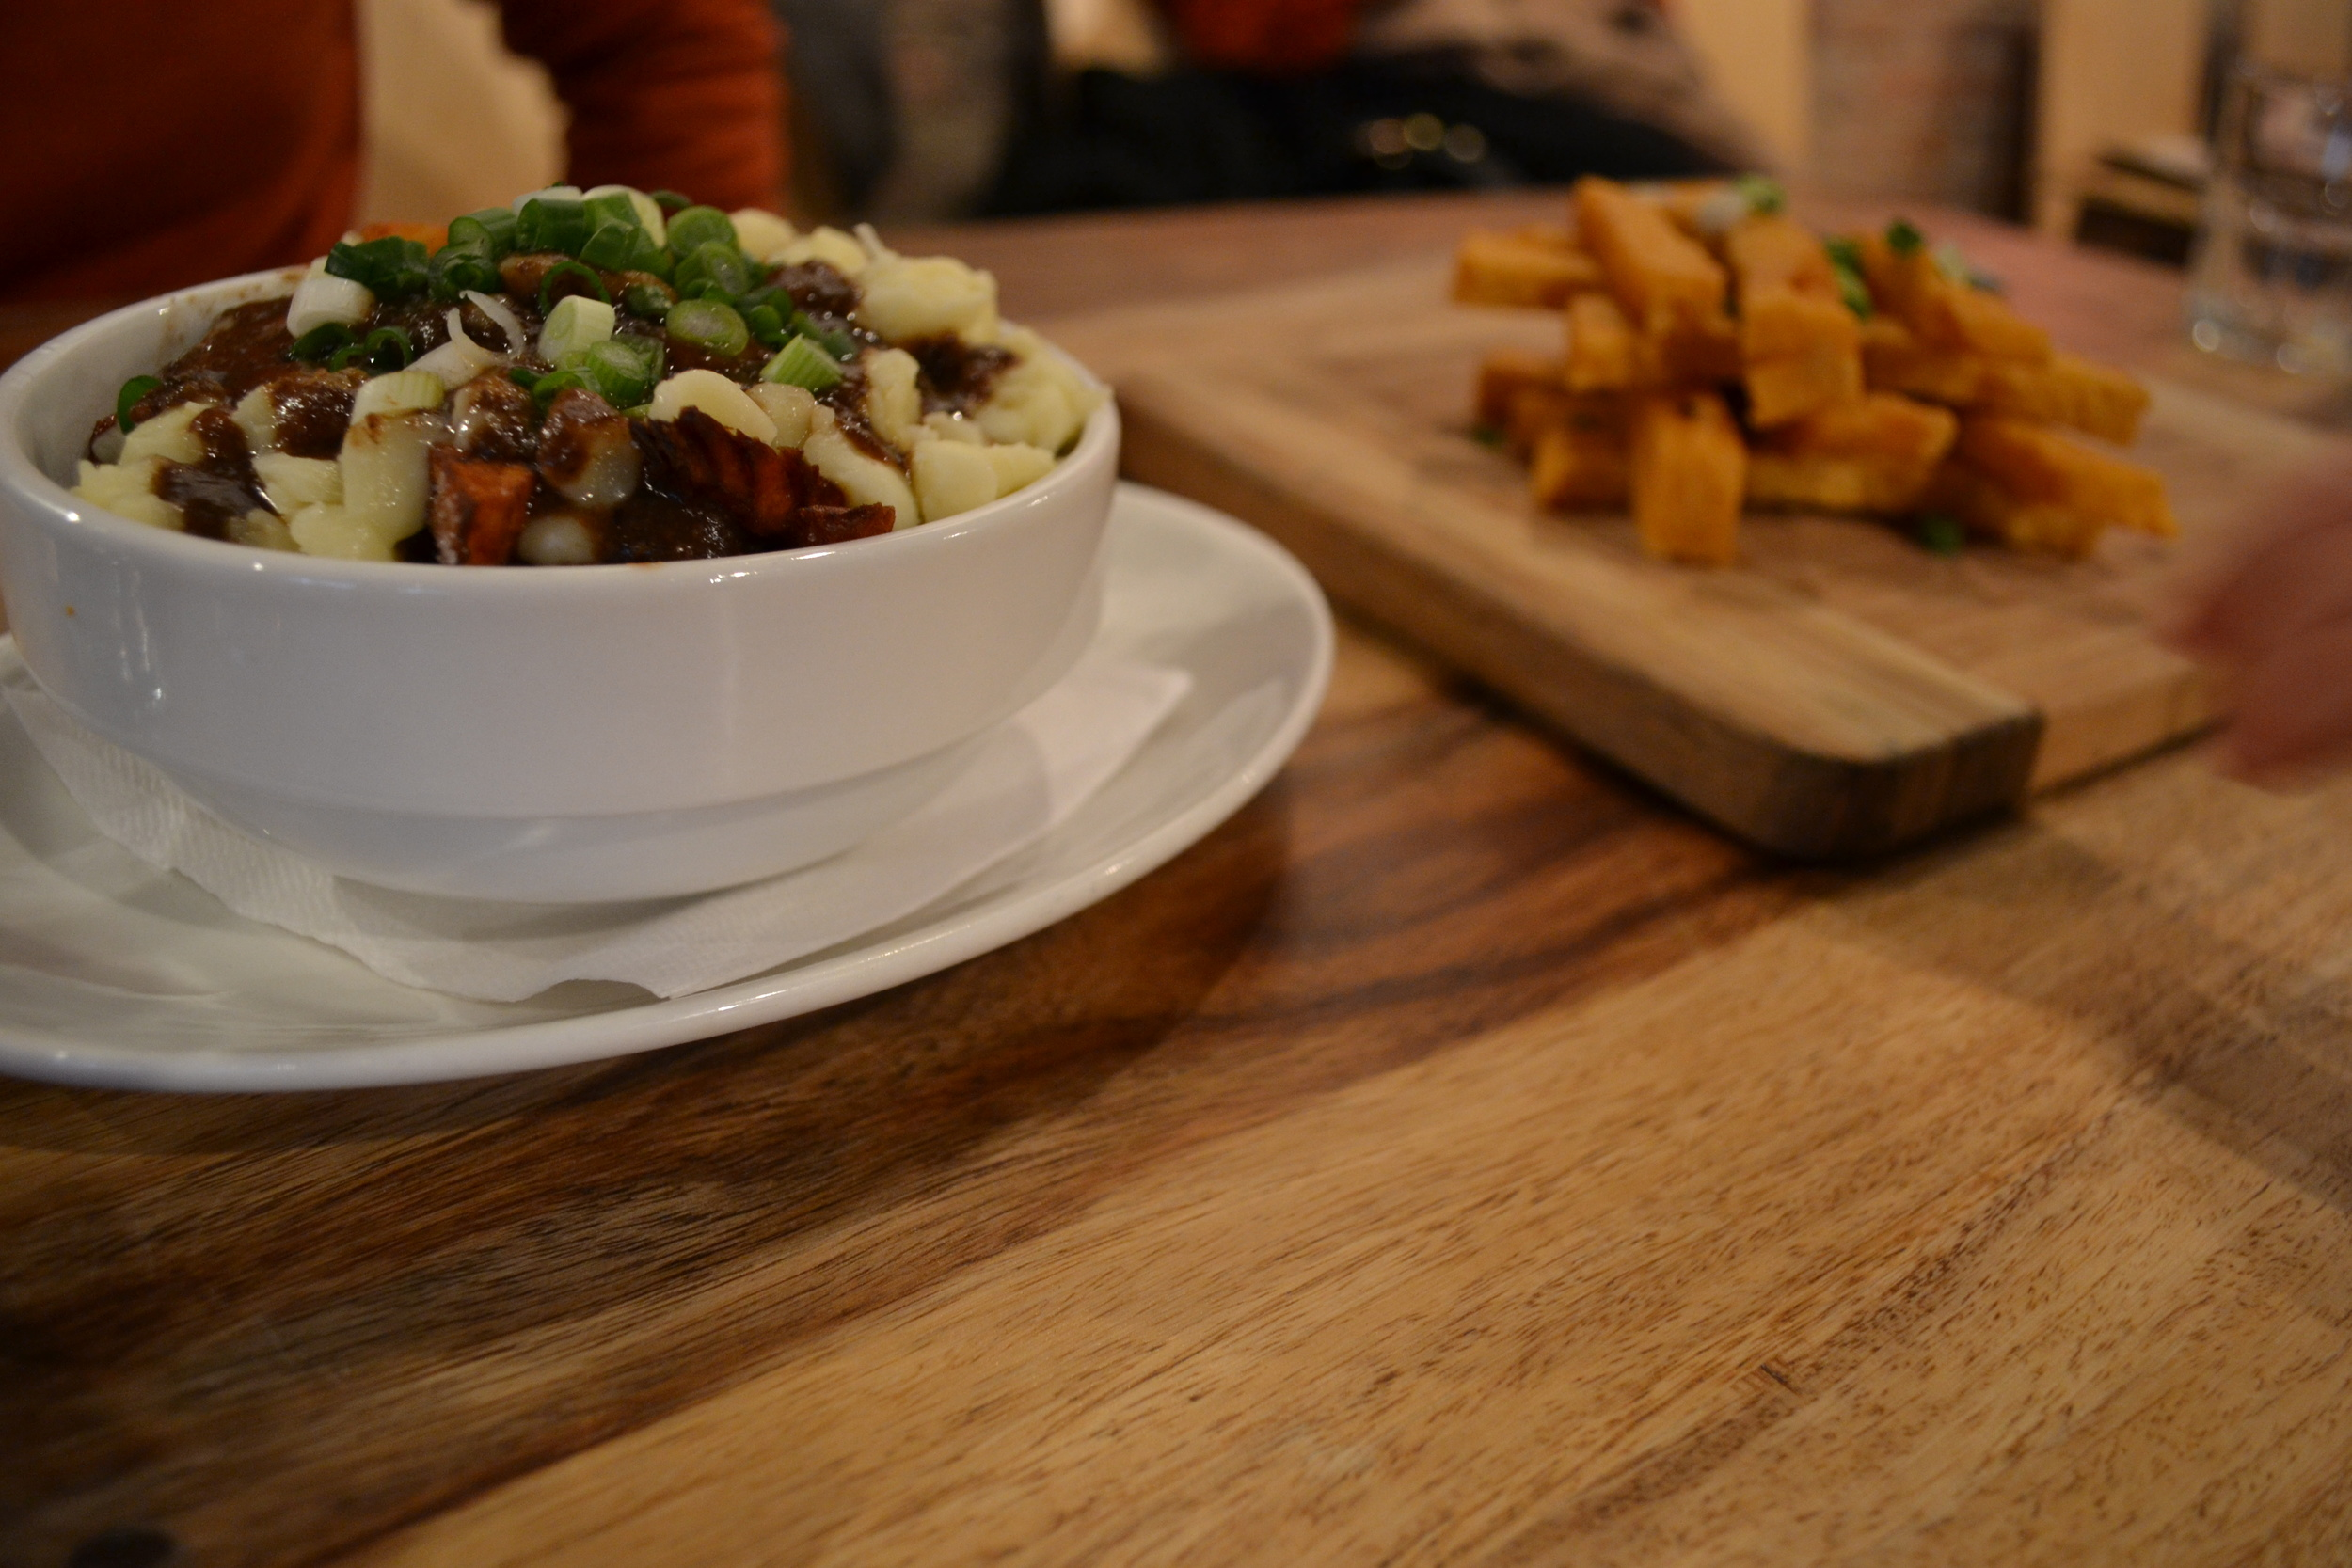 Vegetarian poutine (left) and chickpea fries (right) at Lola Rosa